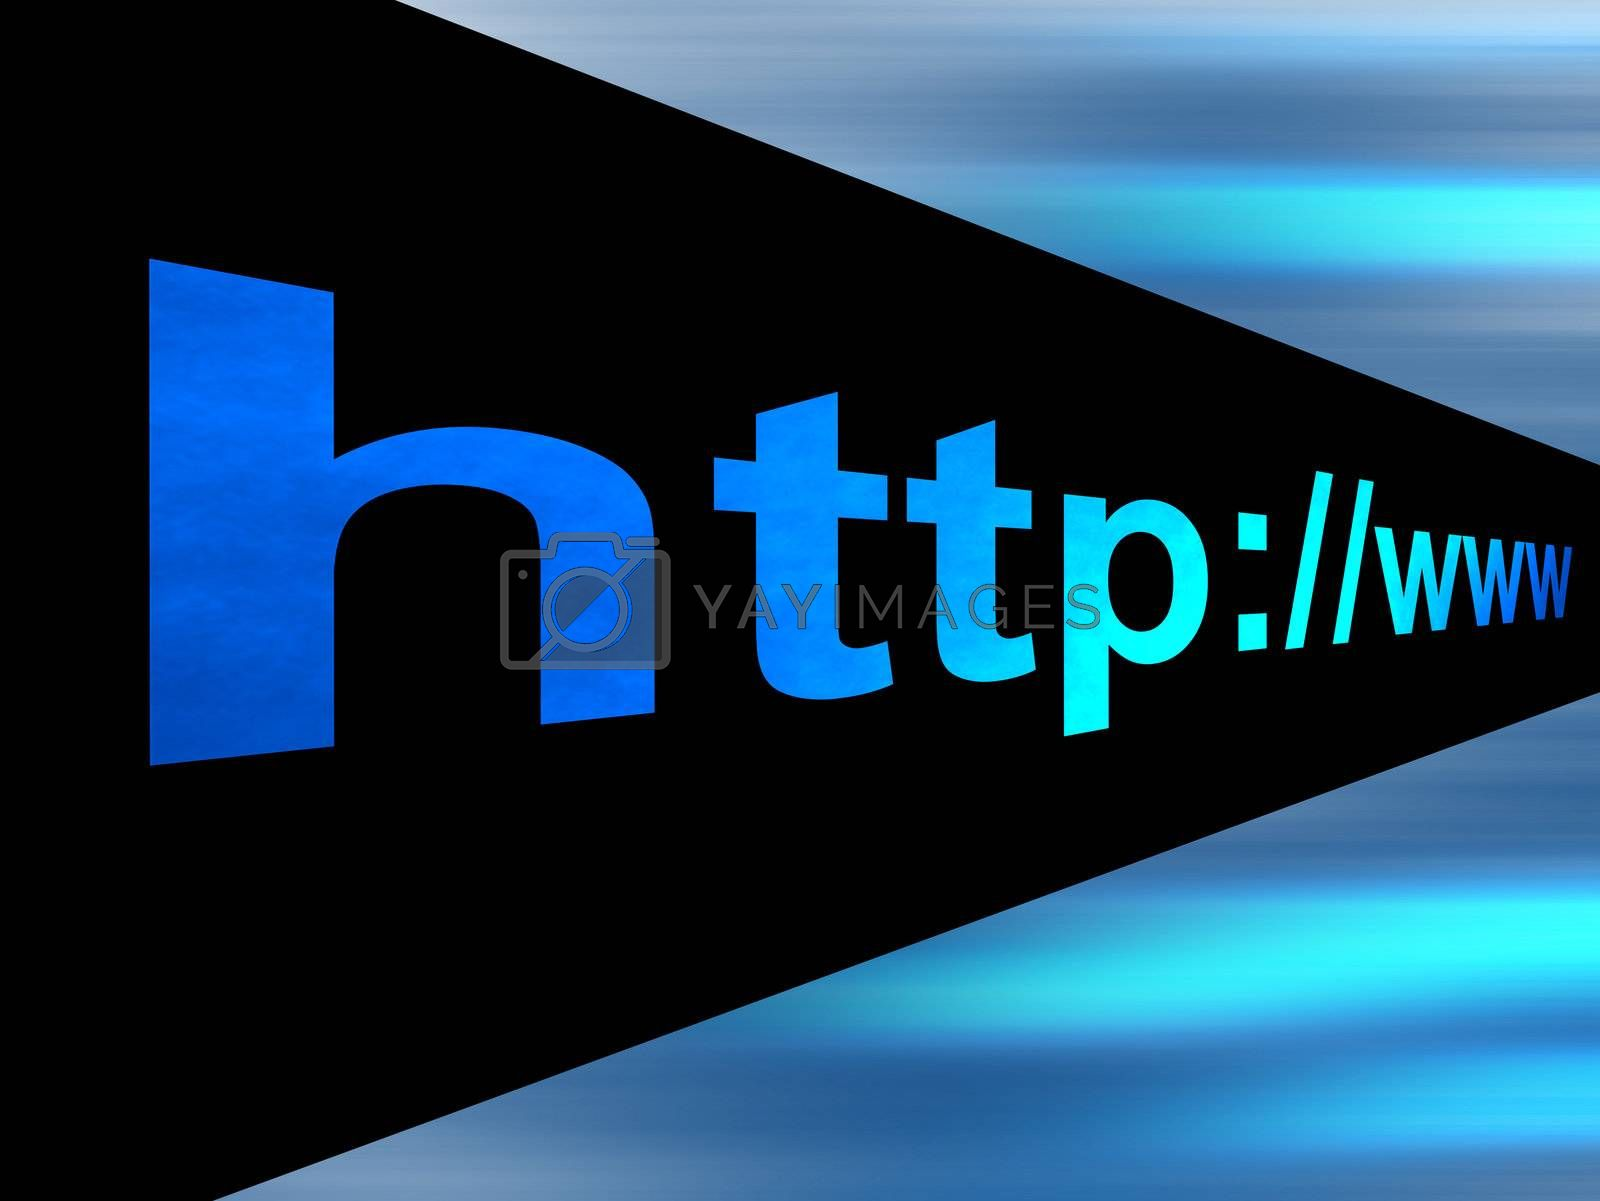 blue and black image with url text